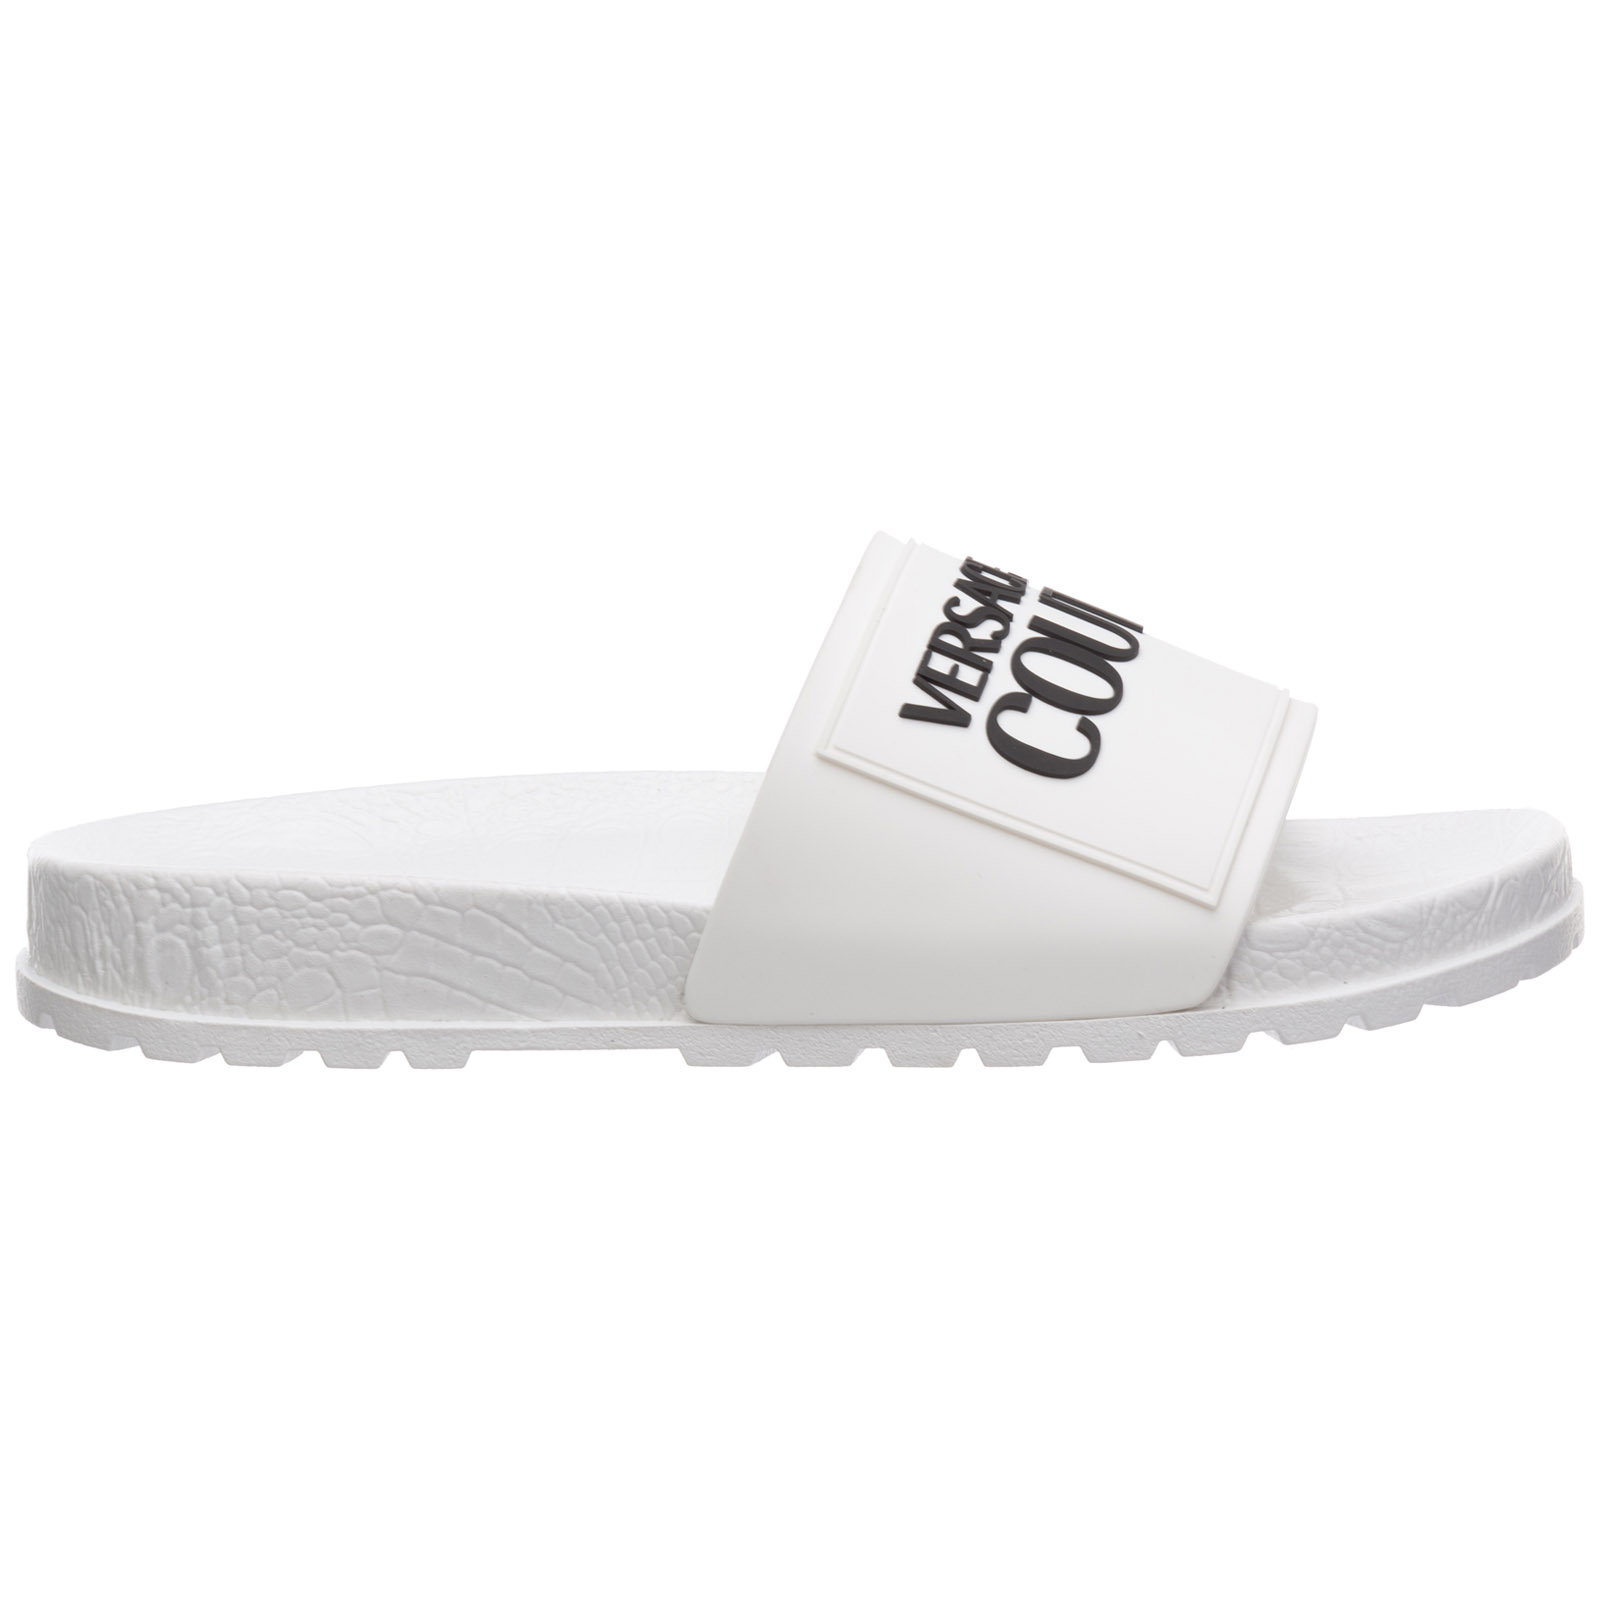 VERSACE JEANS COUTURE WOMEN'S RUBBER SLIPPERS SANDALS